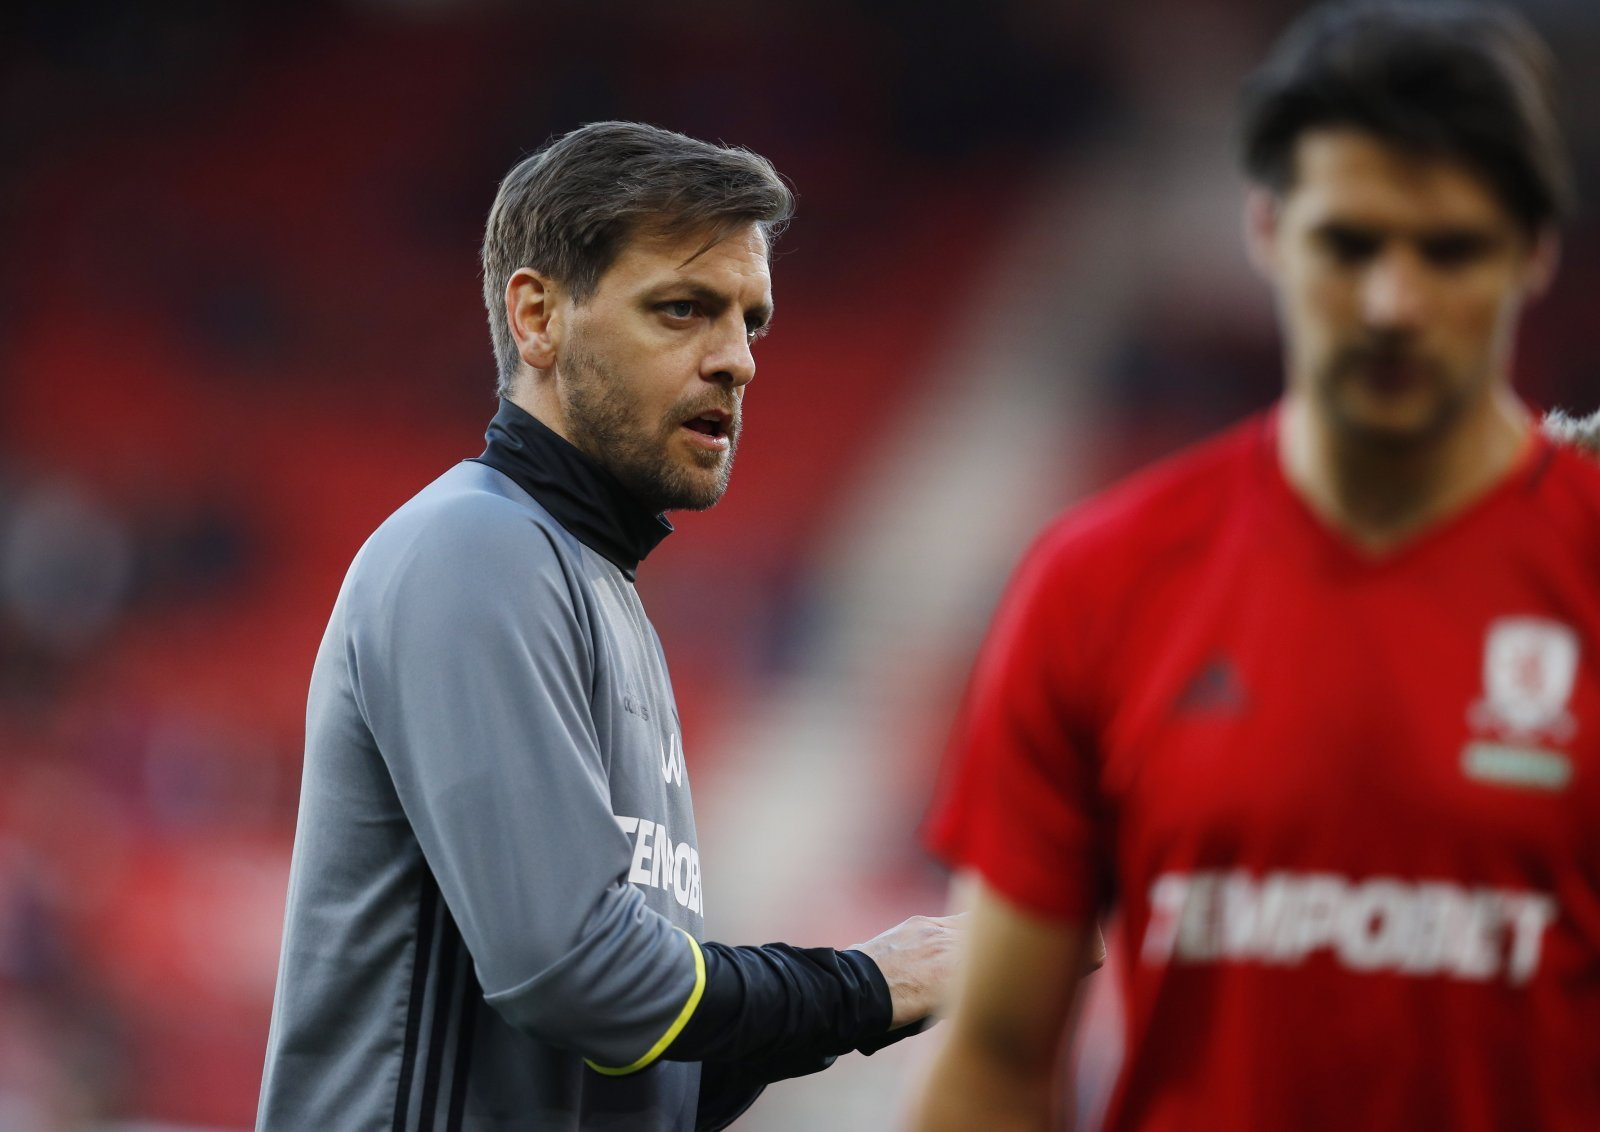 Introducing: Jonathan Woodgate, the perfect replacement for Tony Pulis at Middlesbrough